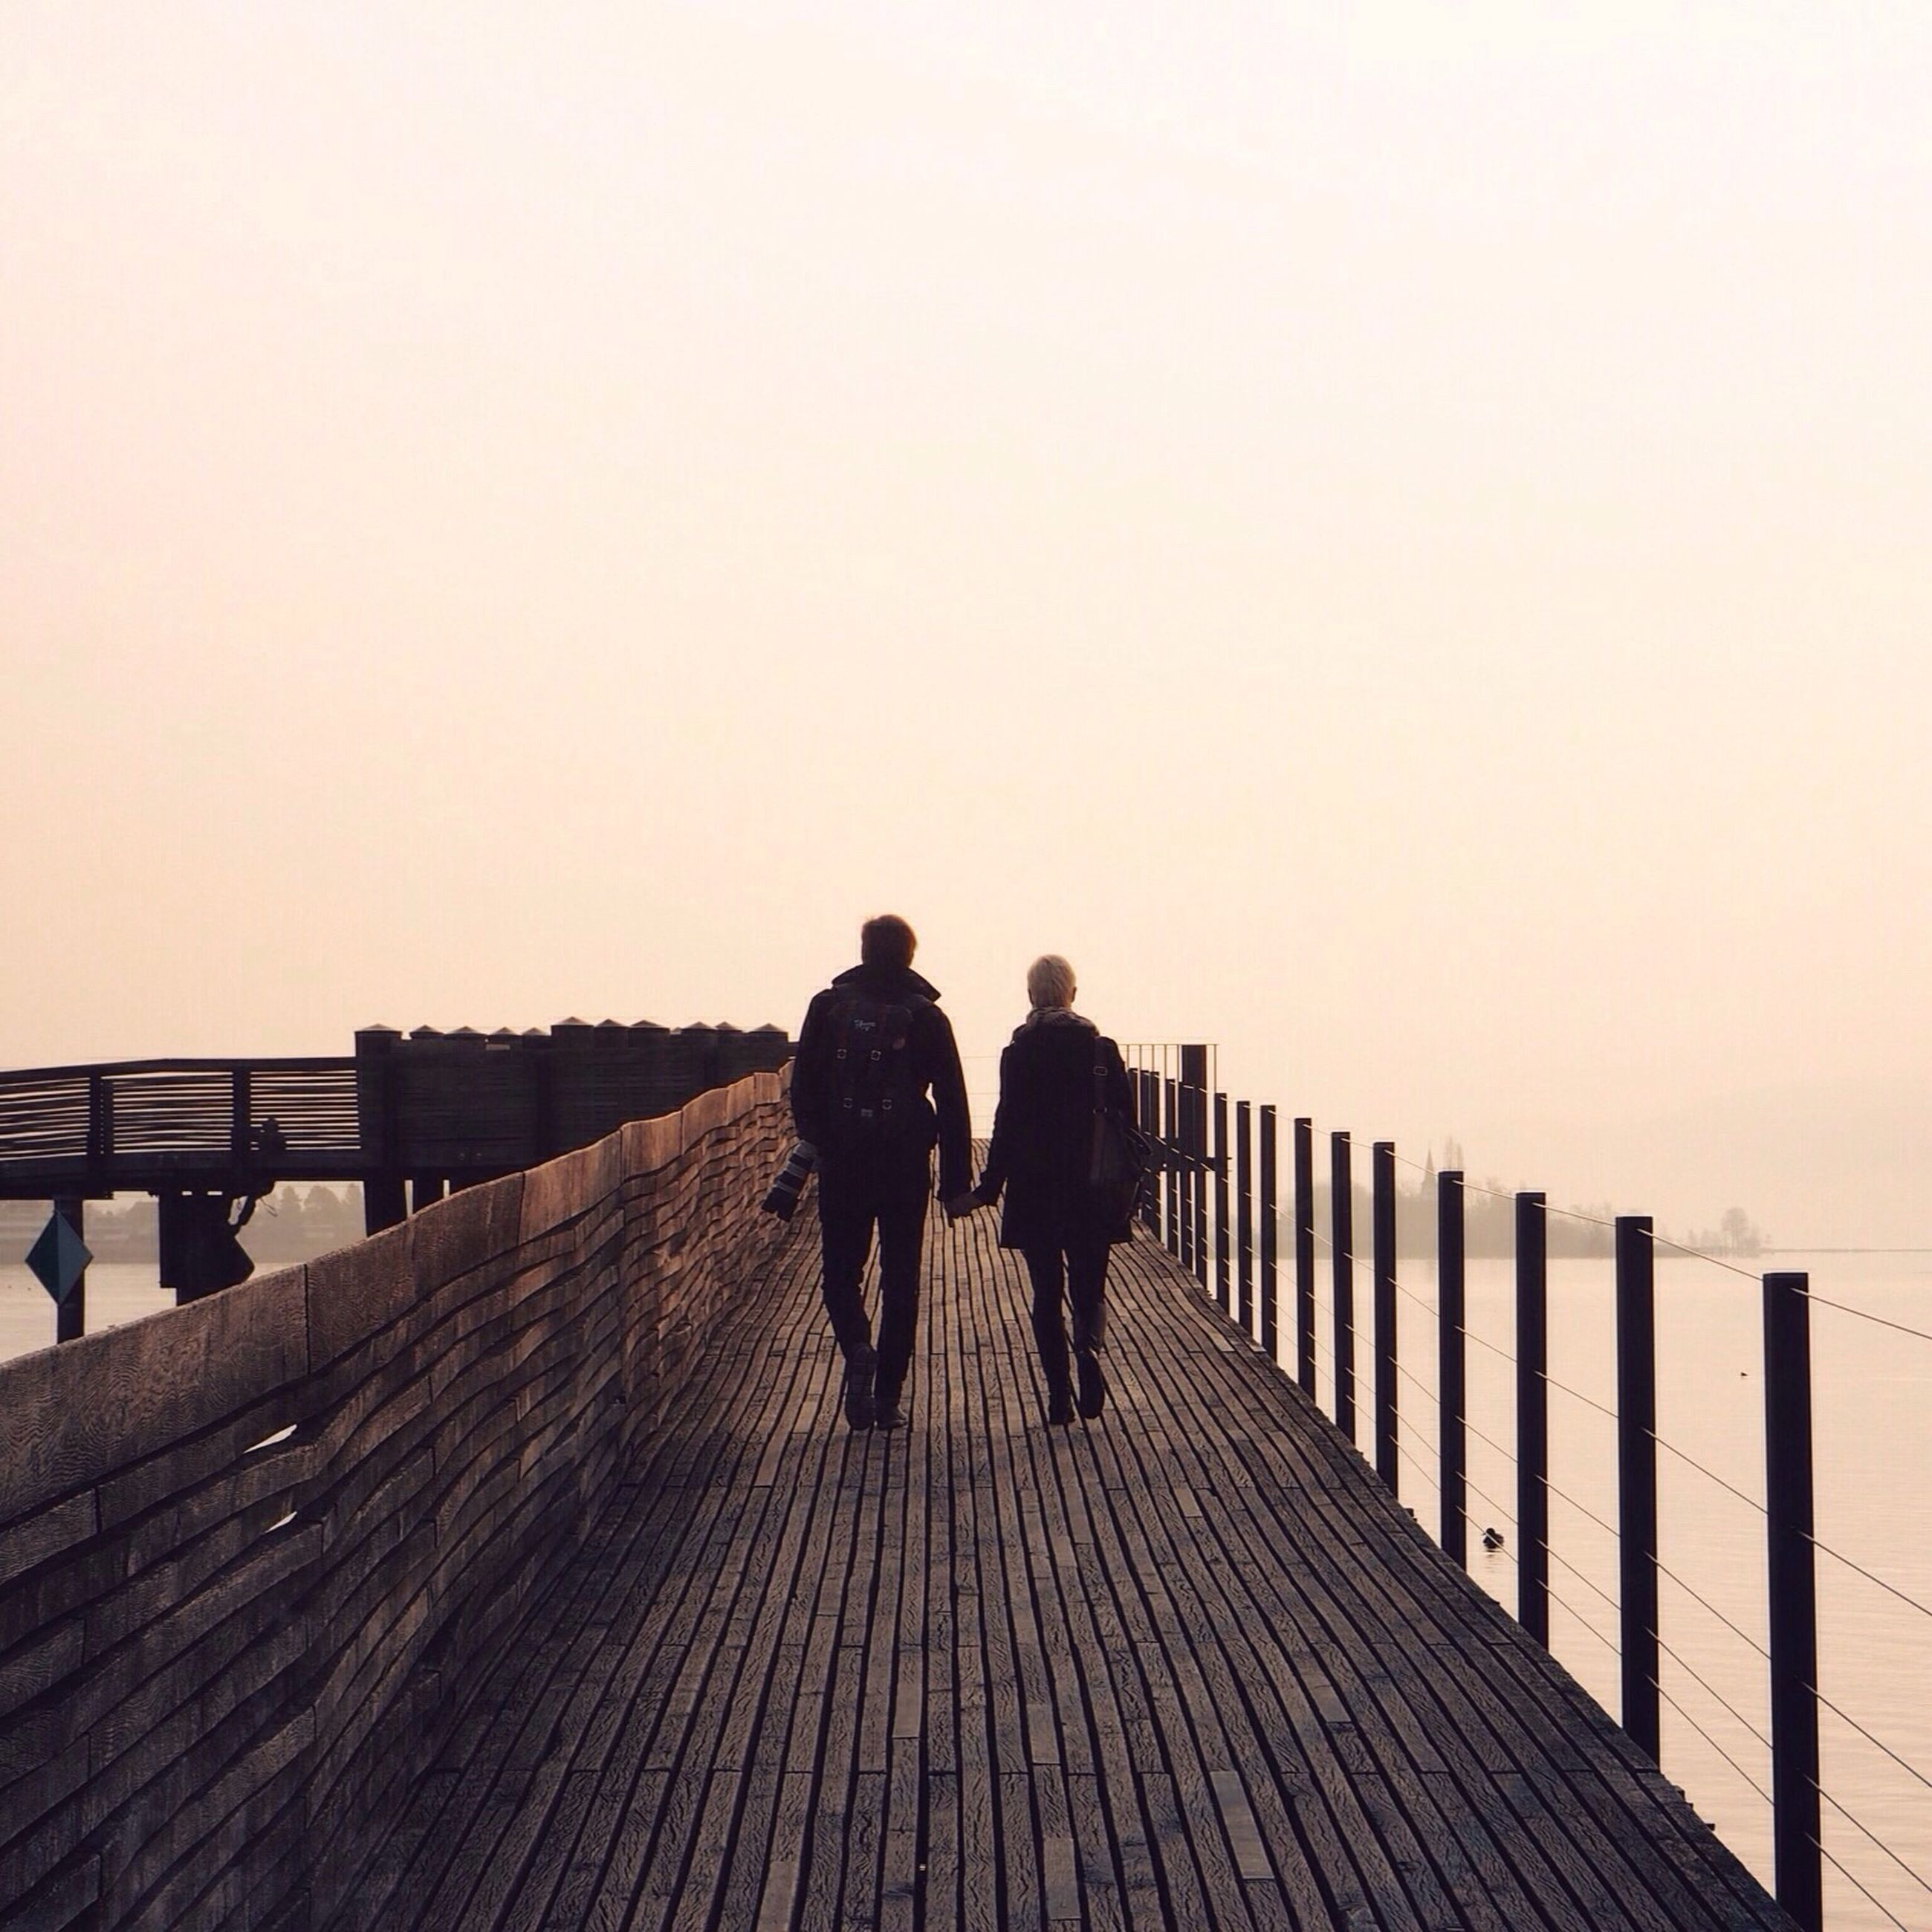 men, clear sky, railing, lifestyles, copy space, walking, full length, leisure activity, rear view, togetherness, person, the way forward, pier, silhouette, connection, standing, sea, boardwalk